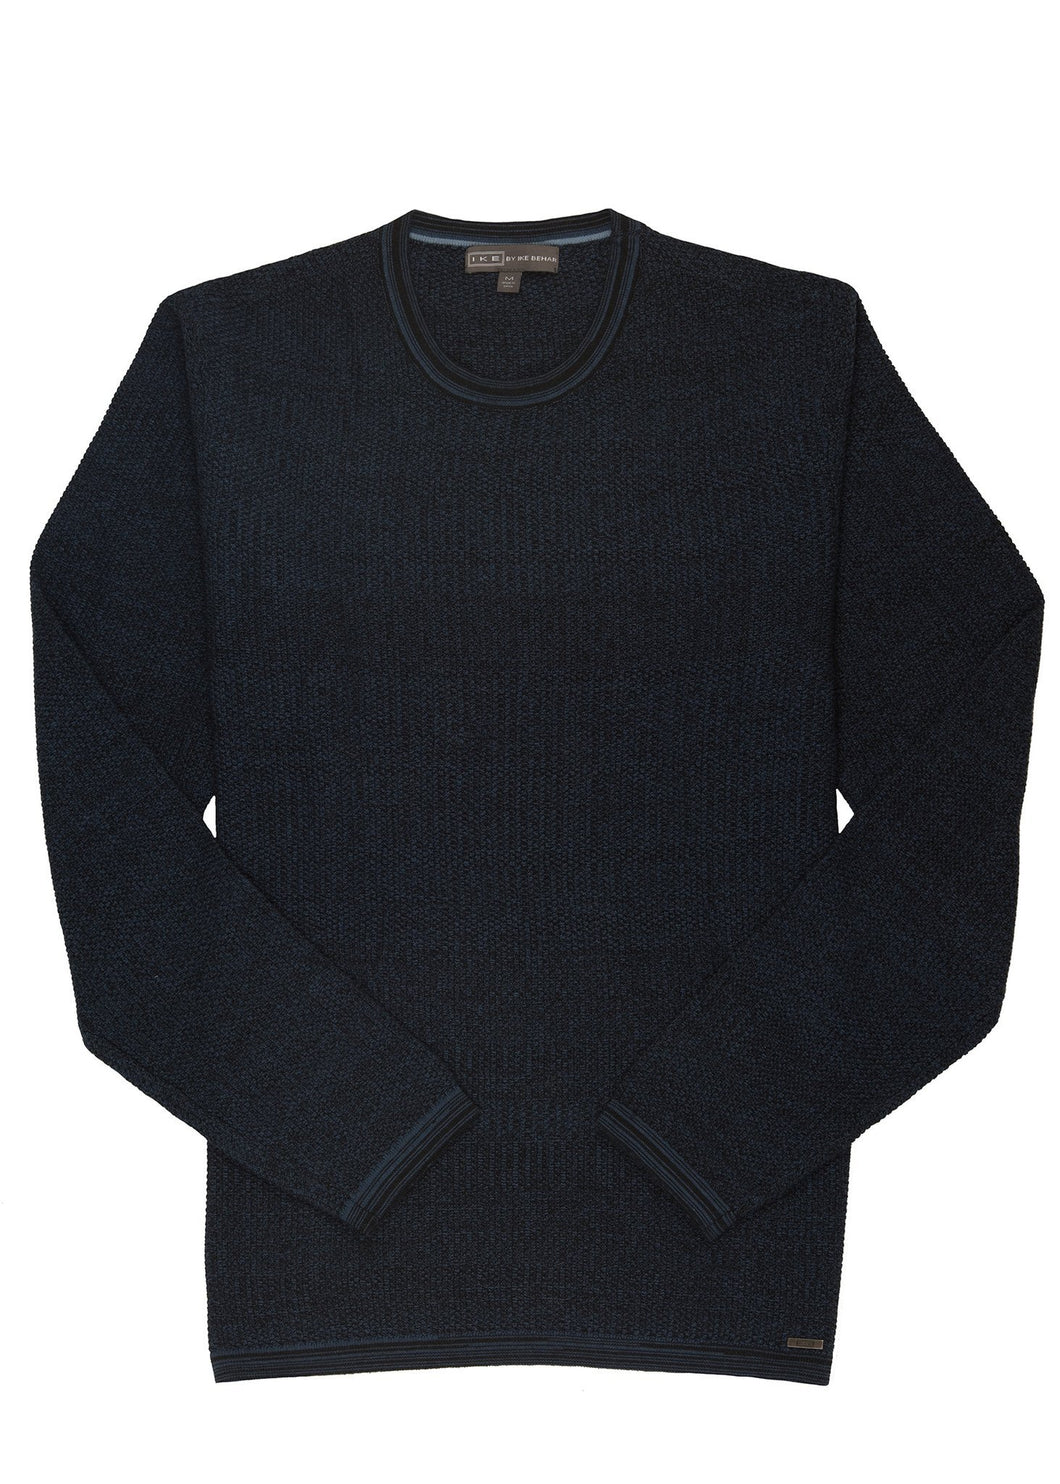 Stormy Blue Ike by Ike Behar Cotton Seed Stitched Sweater